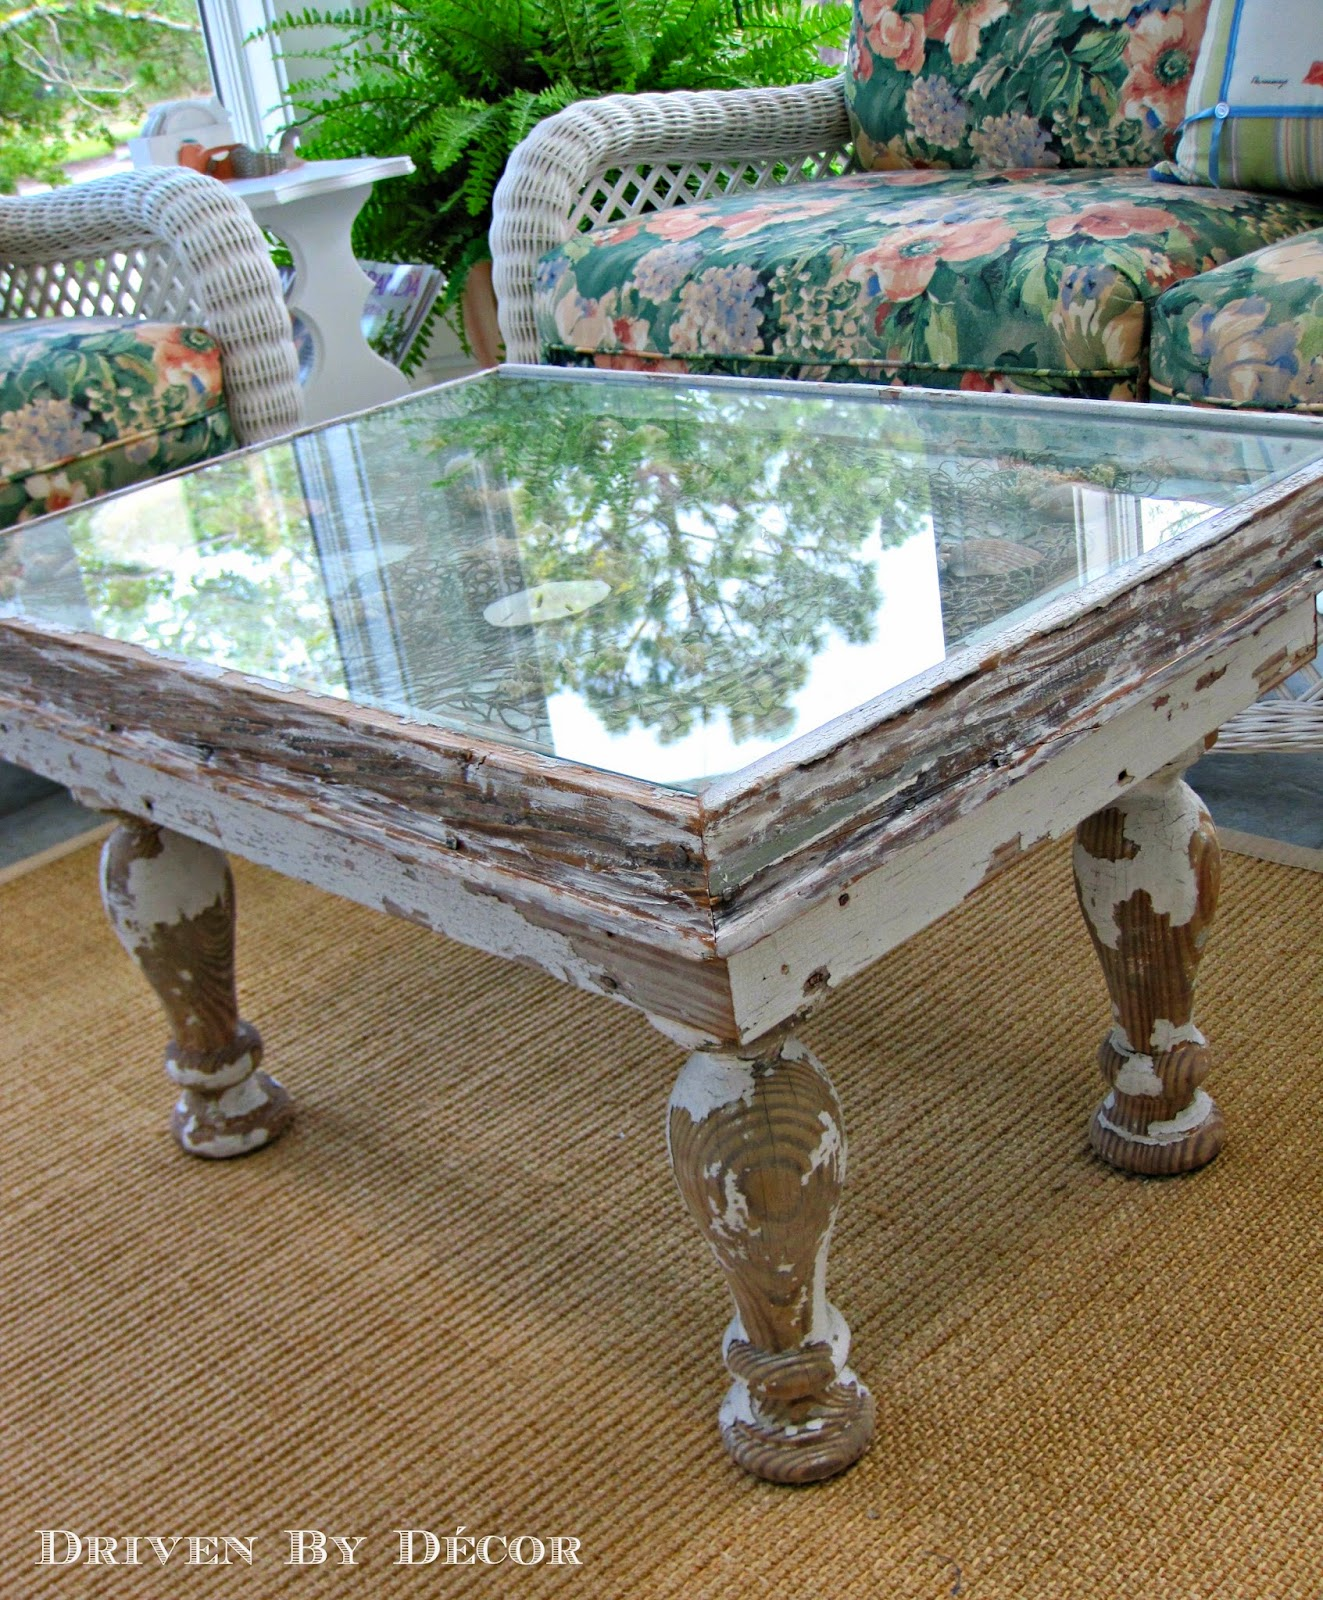 The Cutest Most Clever DIY Coffee Table Driven by Decor